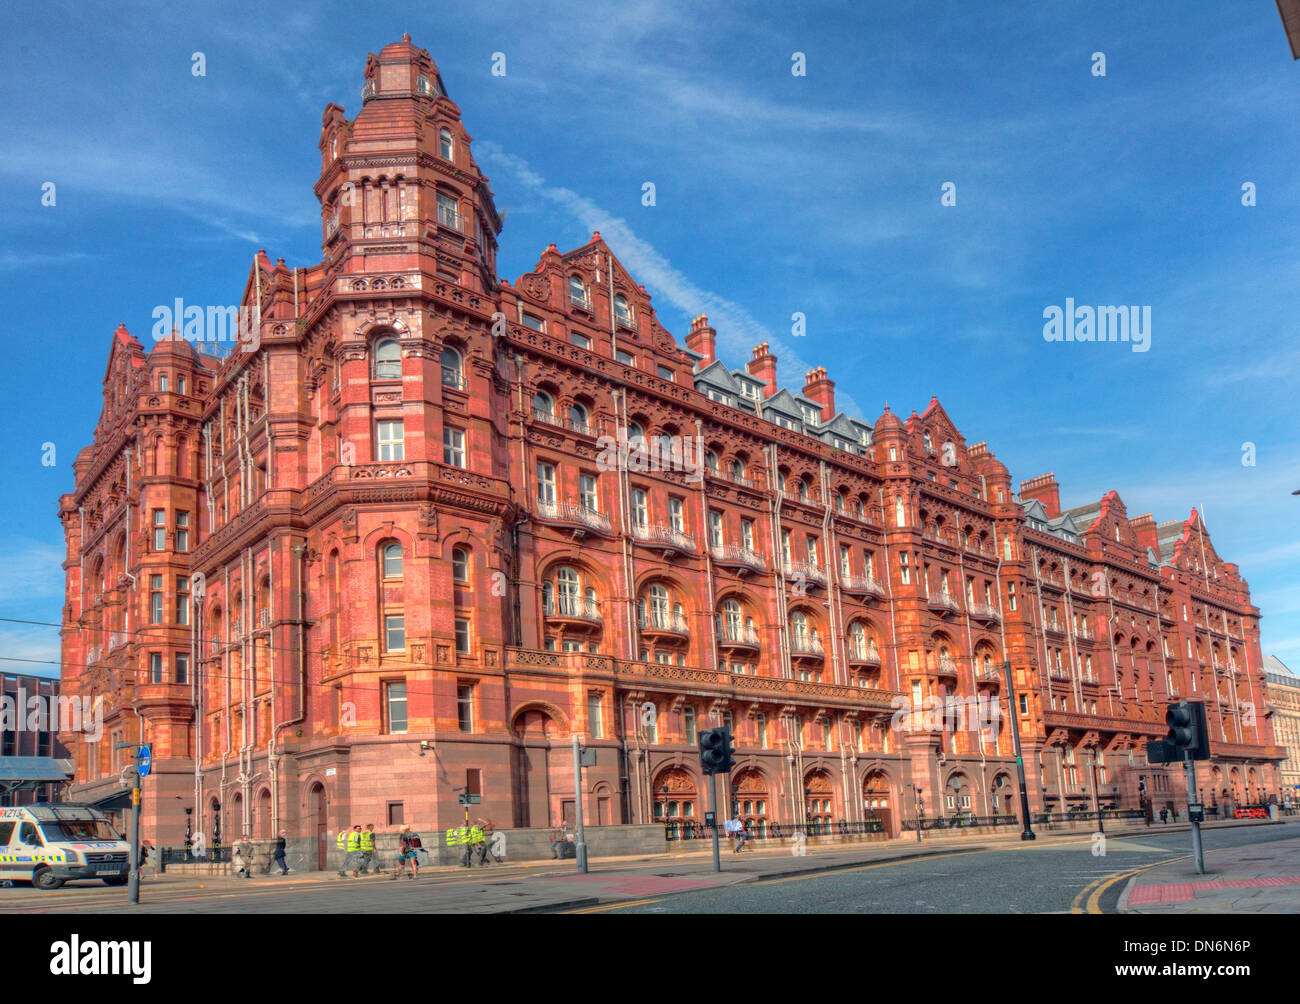 red brick railway B&B grand Midland Railway Central railway station,its,northern,Charles,Trubshaw,grade,II,grade2,Paramount,Hotel,Group,Barcelo,UK,hoteles,QHotels,Quintessential,summer,blue,skies,sky,French,Restaurant,Mr.,Coopers,House,&,Garden,and,The,Wyvern,Restaurant,pano,panorama,gotonysmith,hotels,fine,tourist,travel,architecture,building,wide,shot,wideshot,Peter,Street,and,Lower,Mosley,rown,polished,granite,and,Burmantofts,terracotta,Burmantoft,Buy Pictures of,Buy Images Of